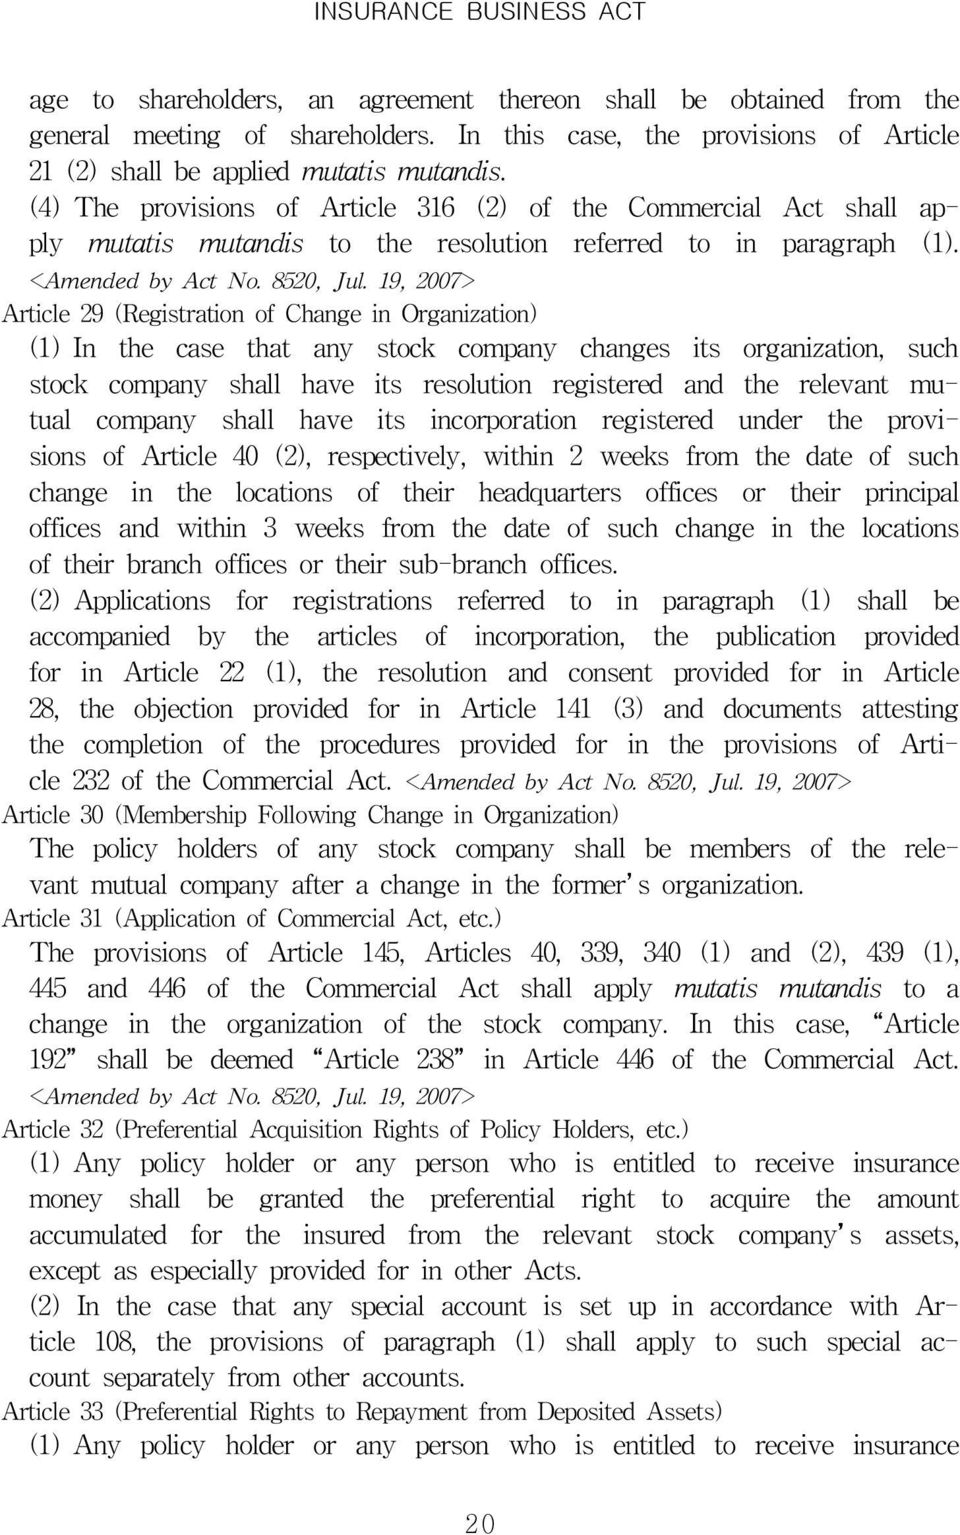 19, 2007> Article 29 (Registration of Change in Organization) (1) In the case that any stock company changes its organization, such stock company shall have its resolution registered and the relevant